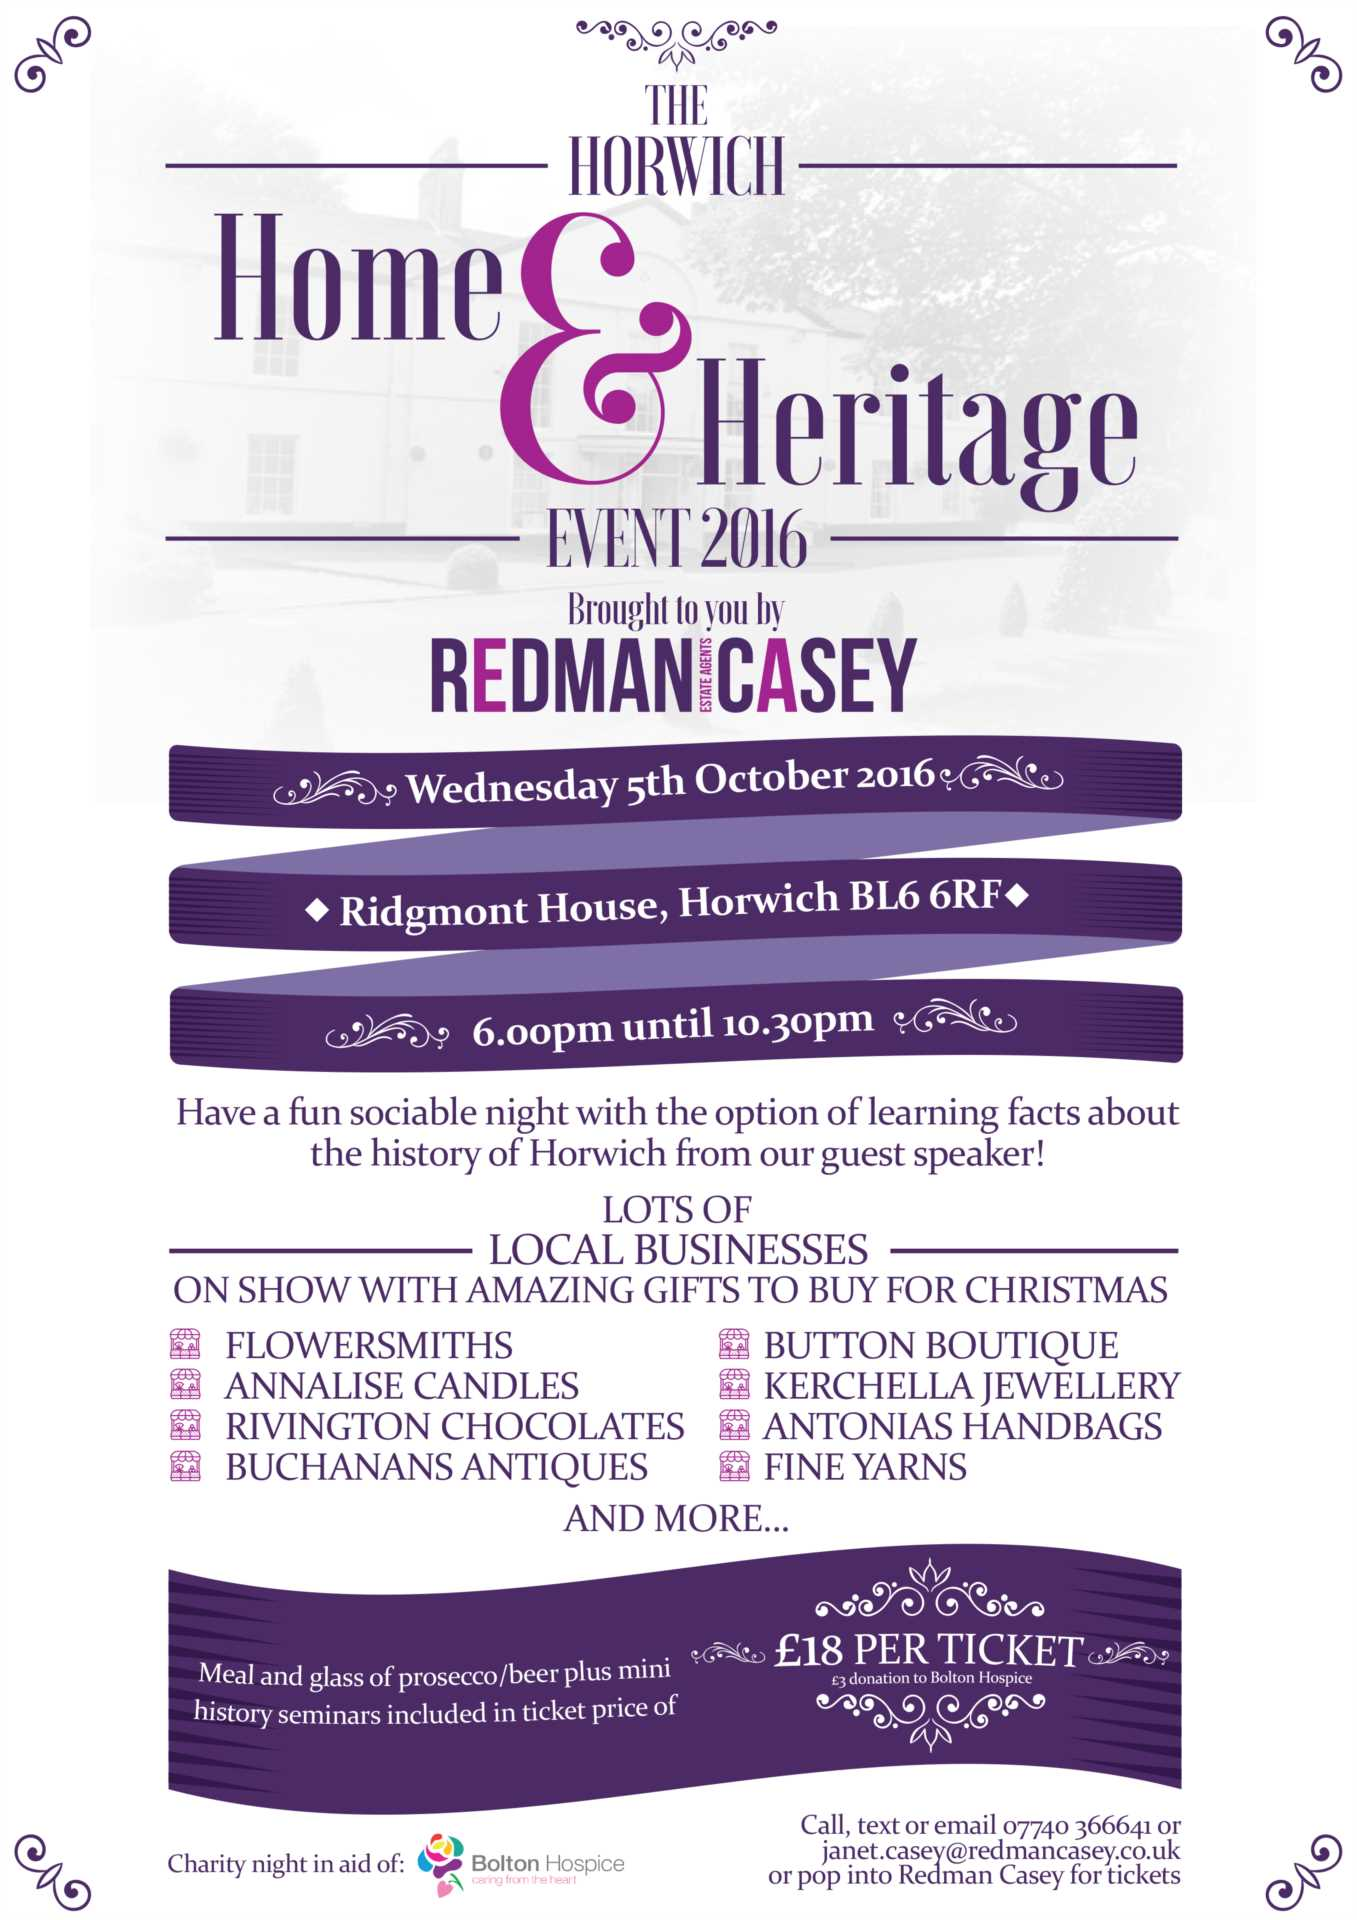 HORWICH HOME & HERITAGE EVENT